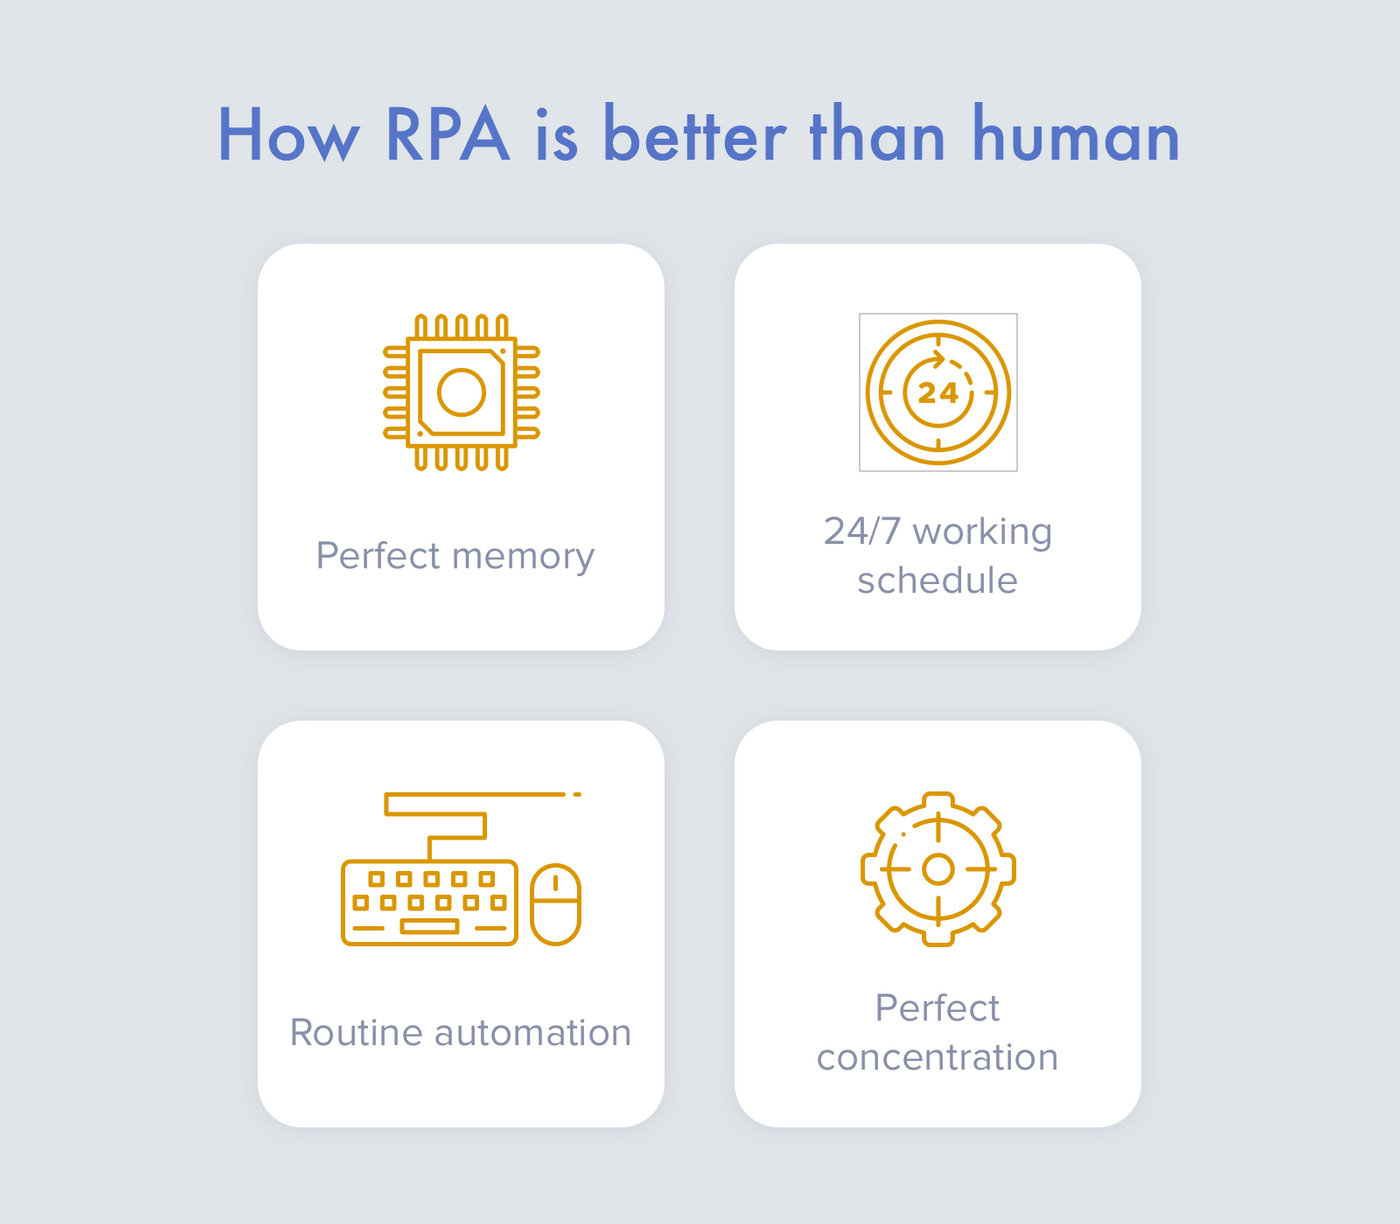 RPA in finance sector vs ordinary employees